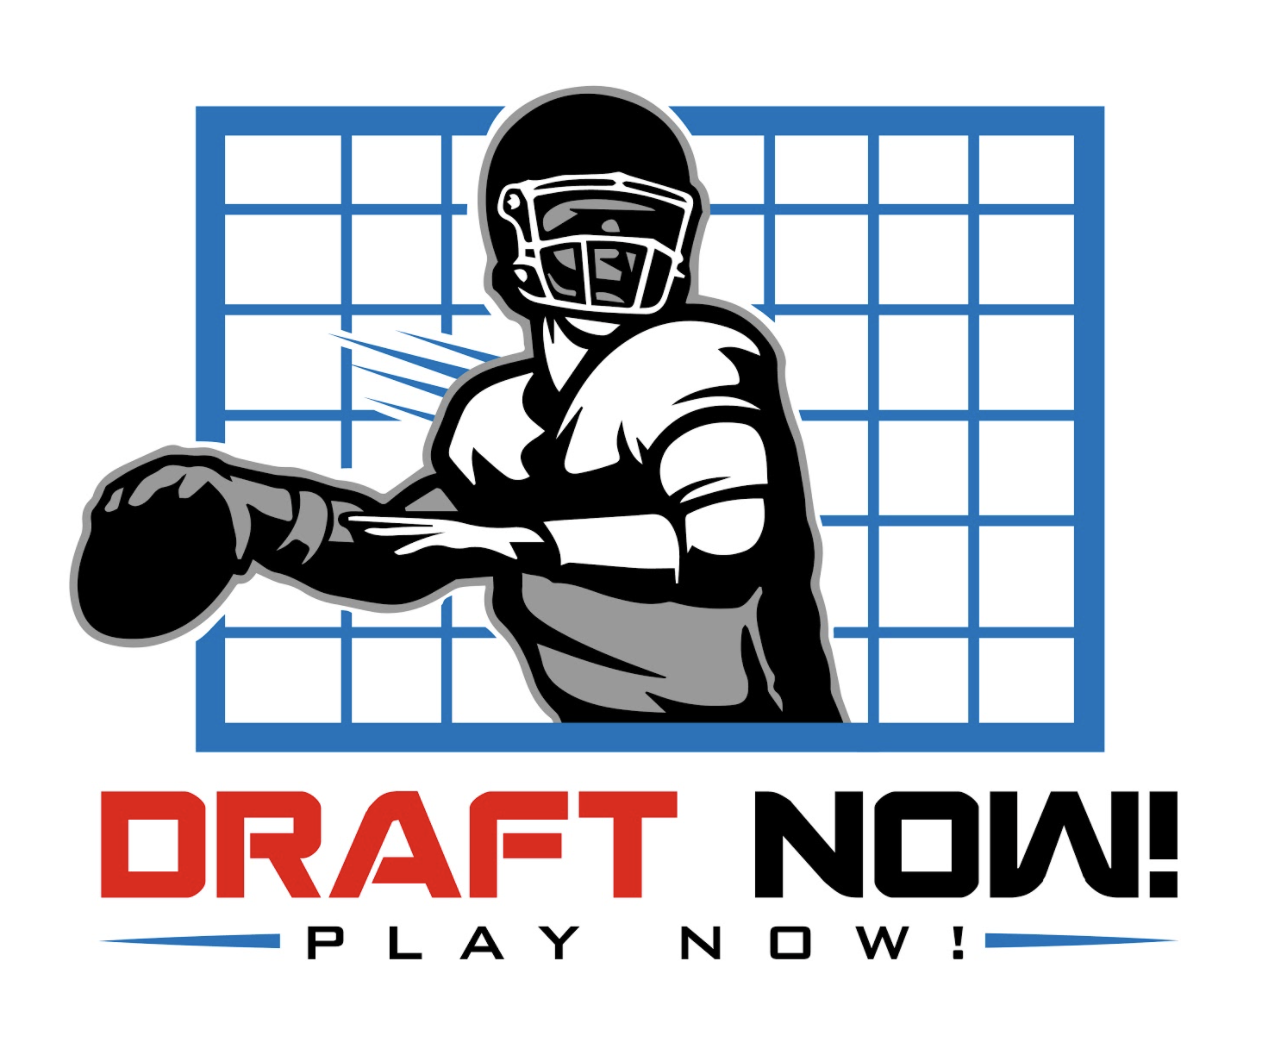 Draft Now! Play Now!